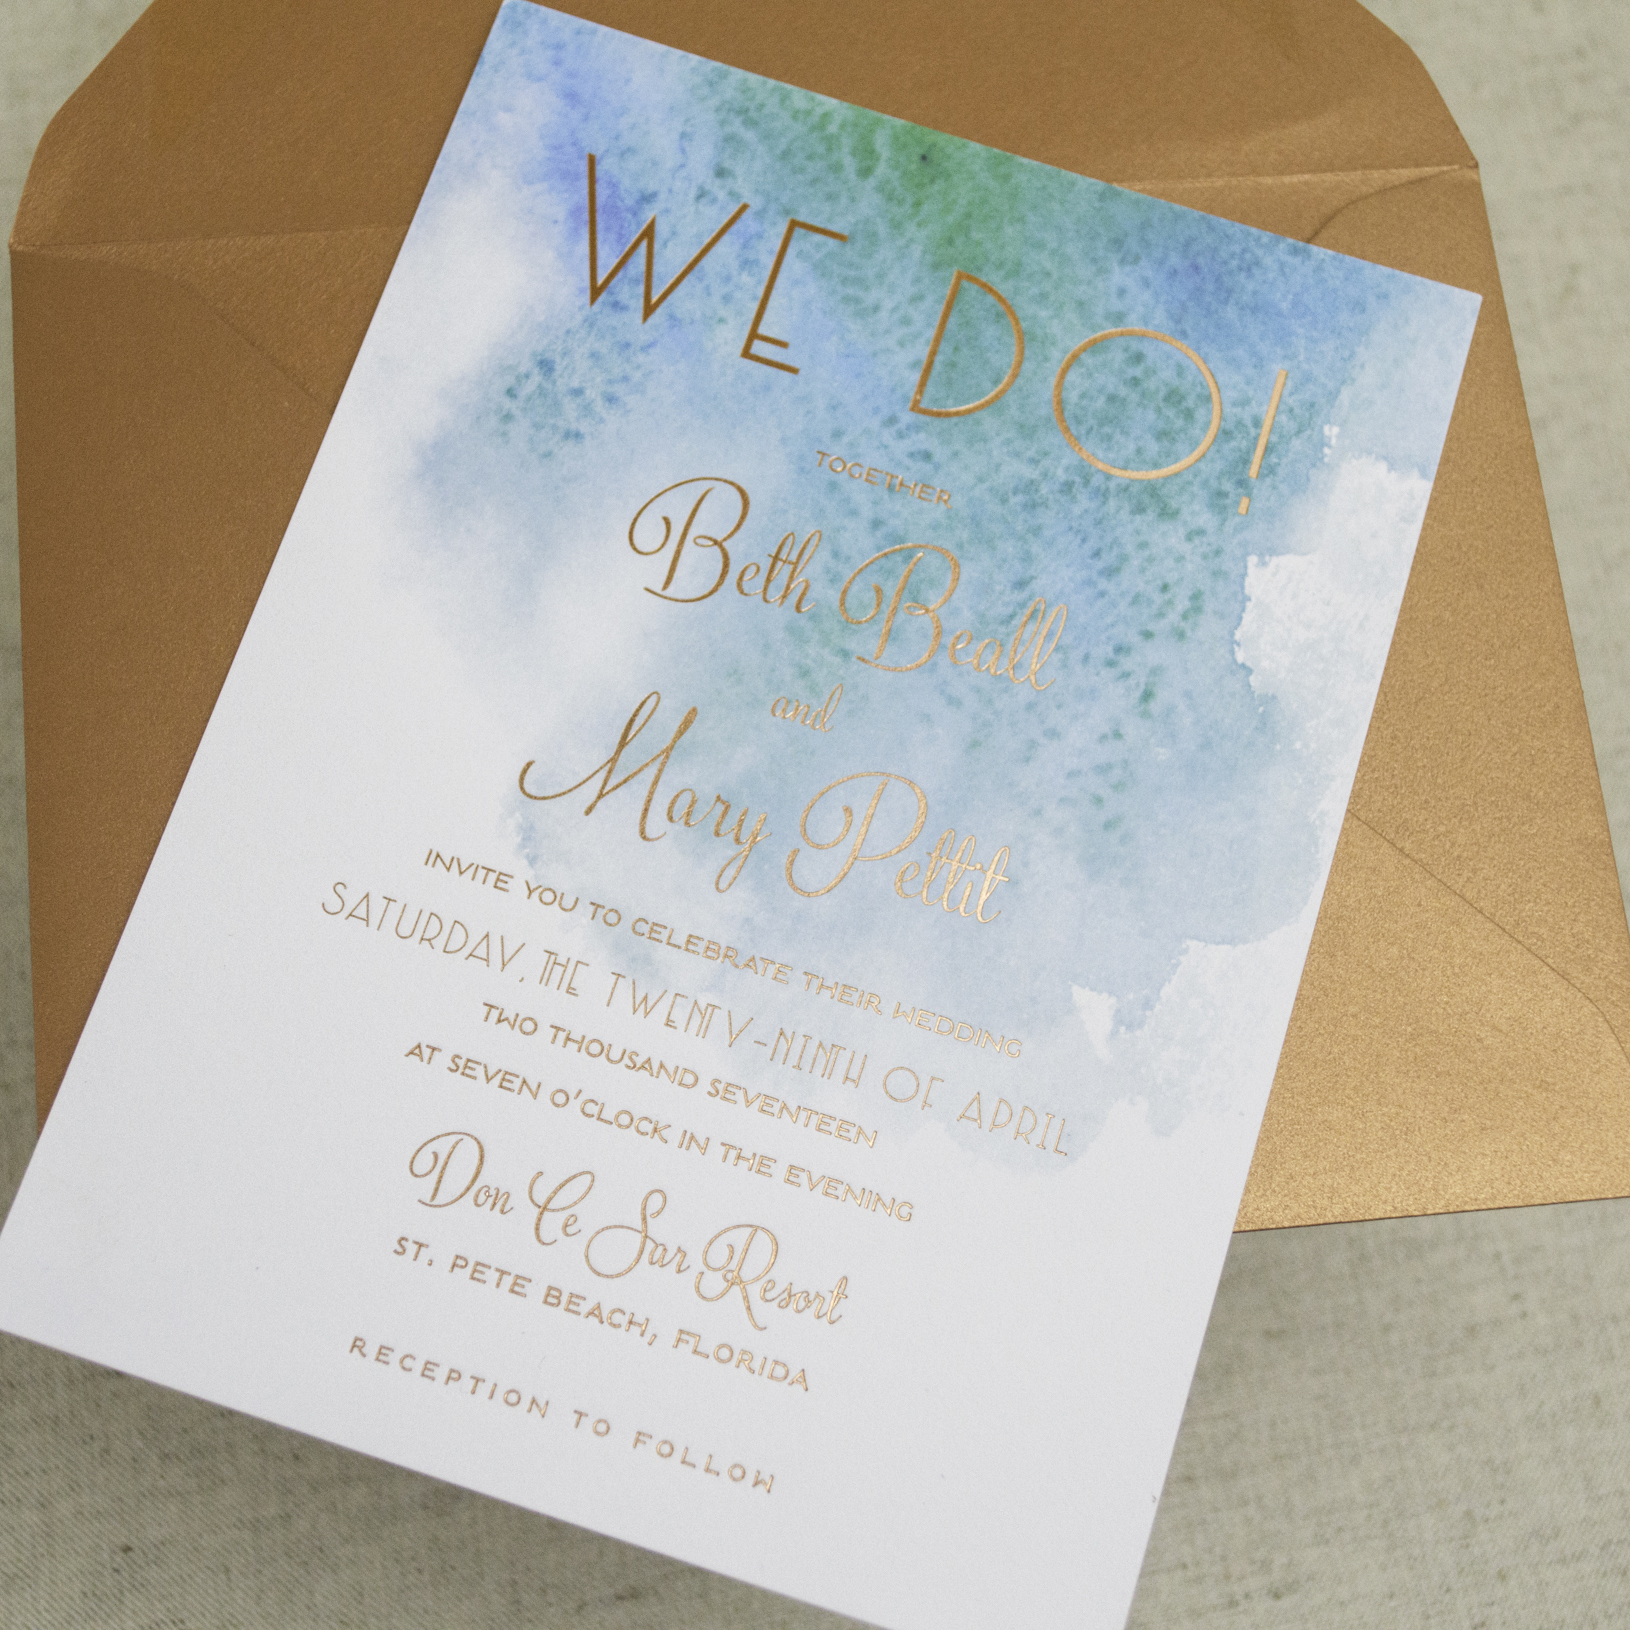 We Just Love The Way These Wedding Invitations Feature A Unique Beach Themed Design For Modern Seaside Soiree